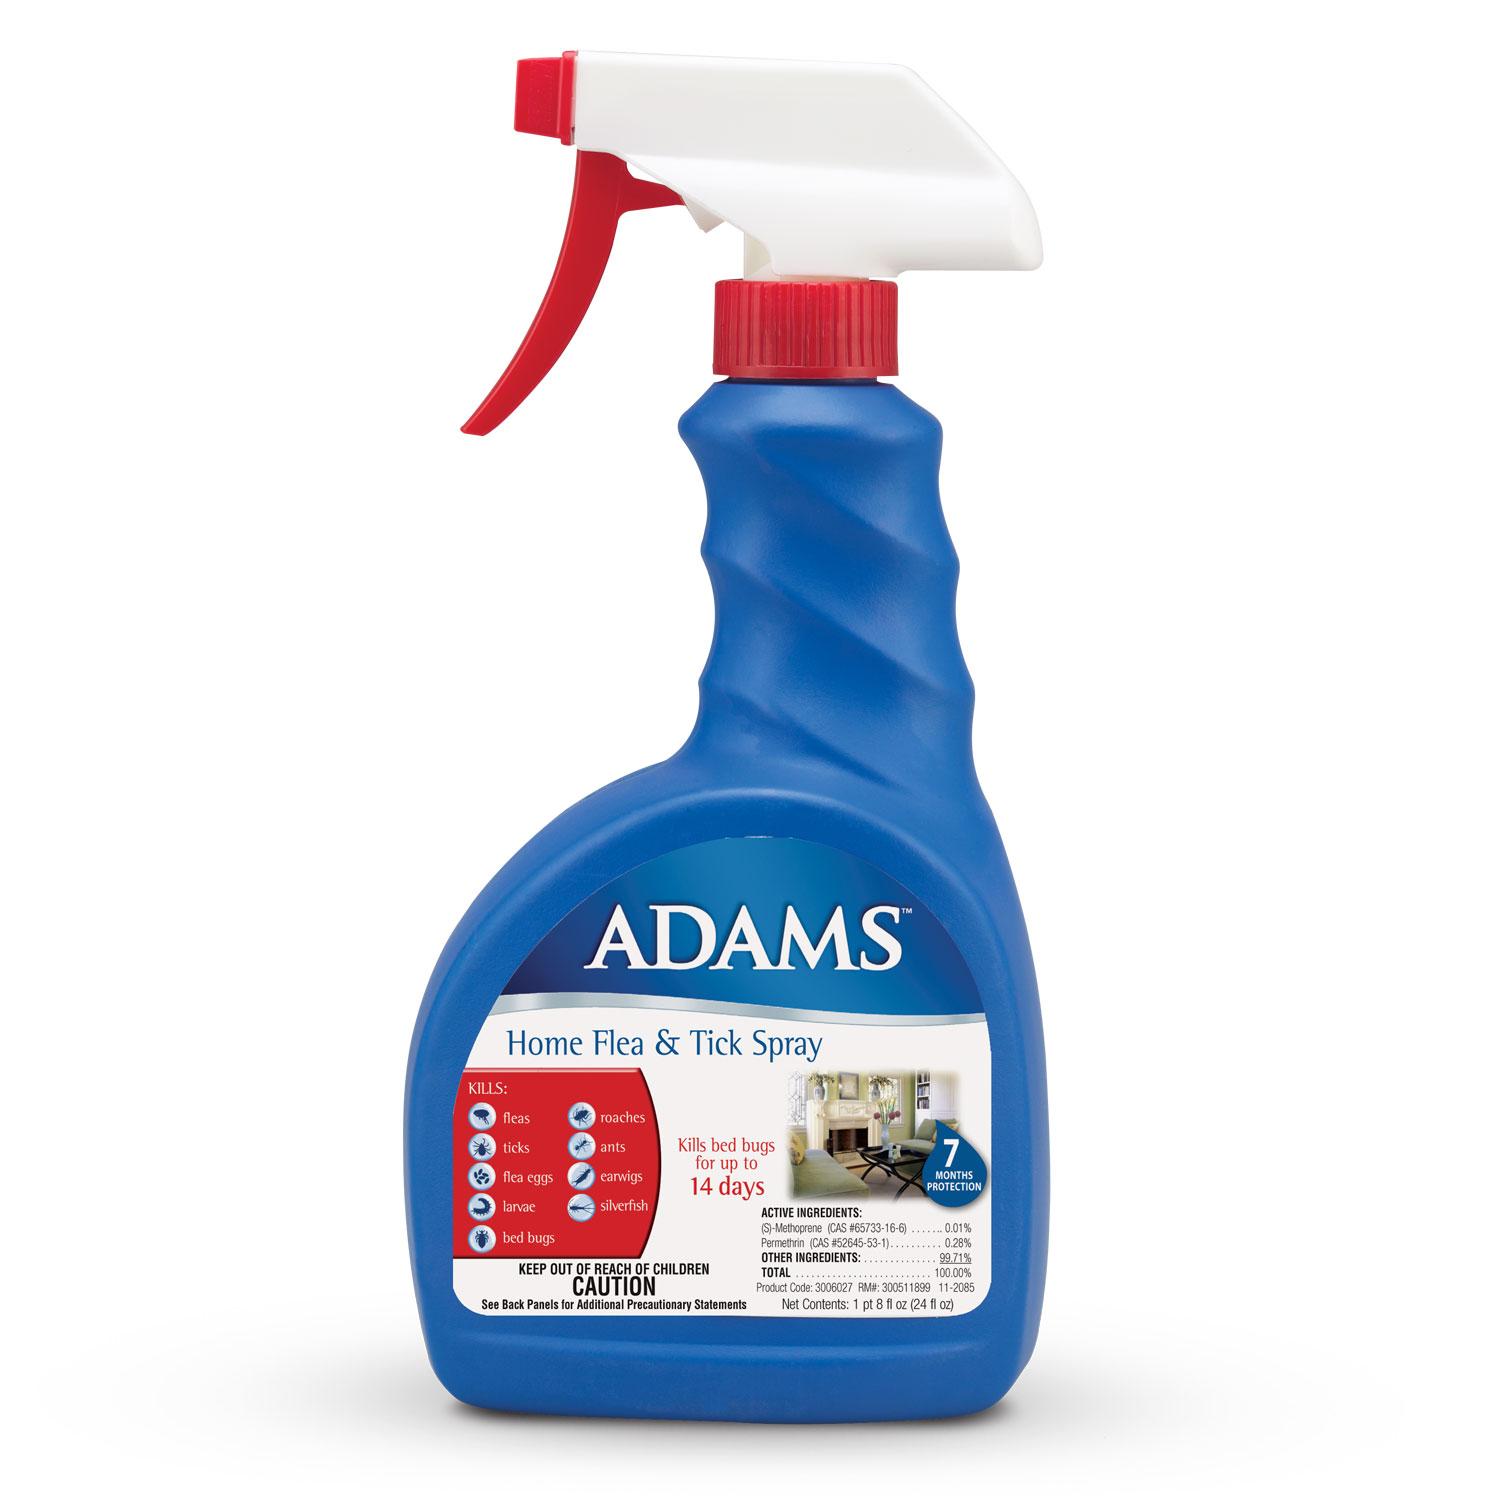 Adams Home Flea & Tick Spray